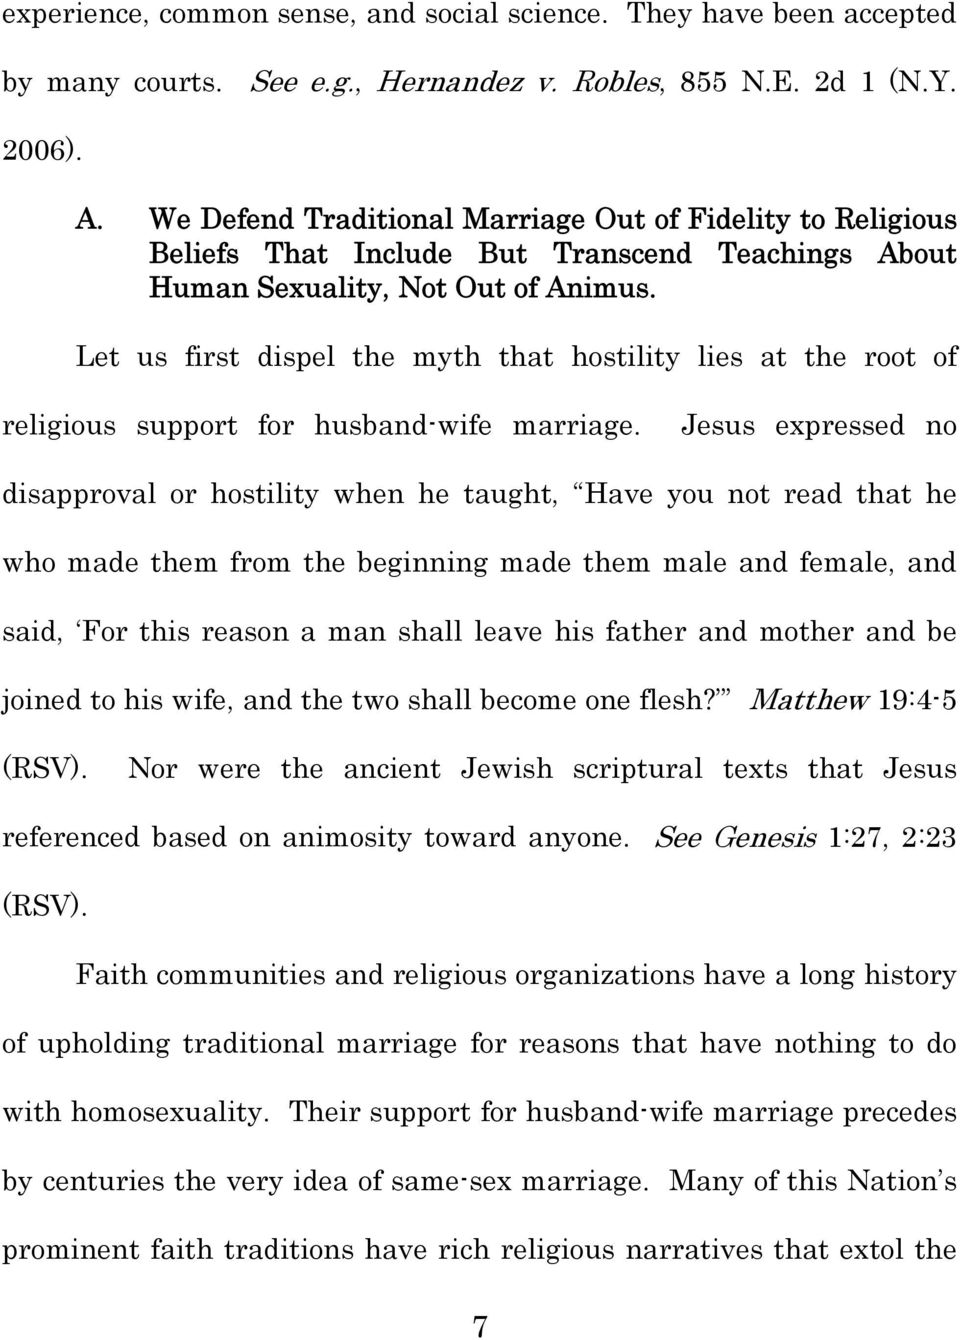 Let us first dispel the myth that hostility lies at the root of religious support for husband-wife marriage.